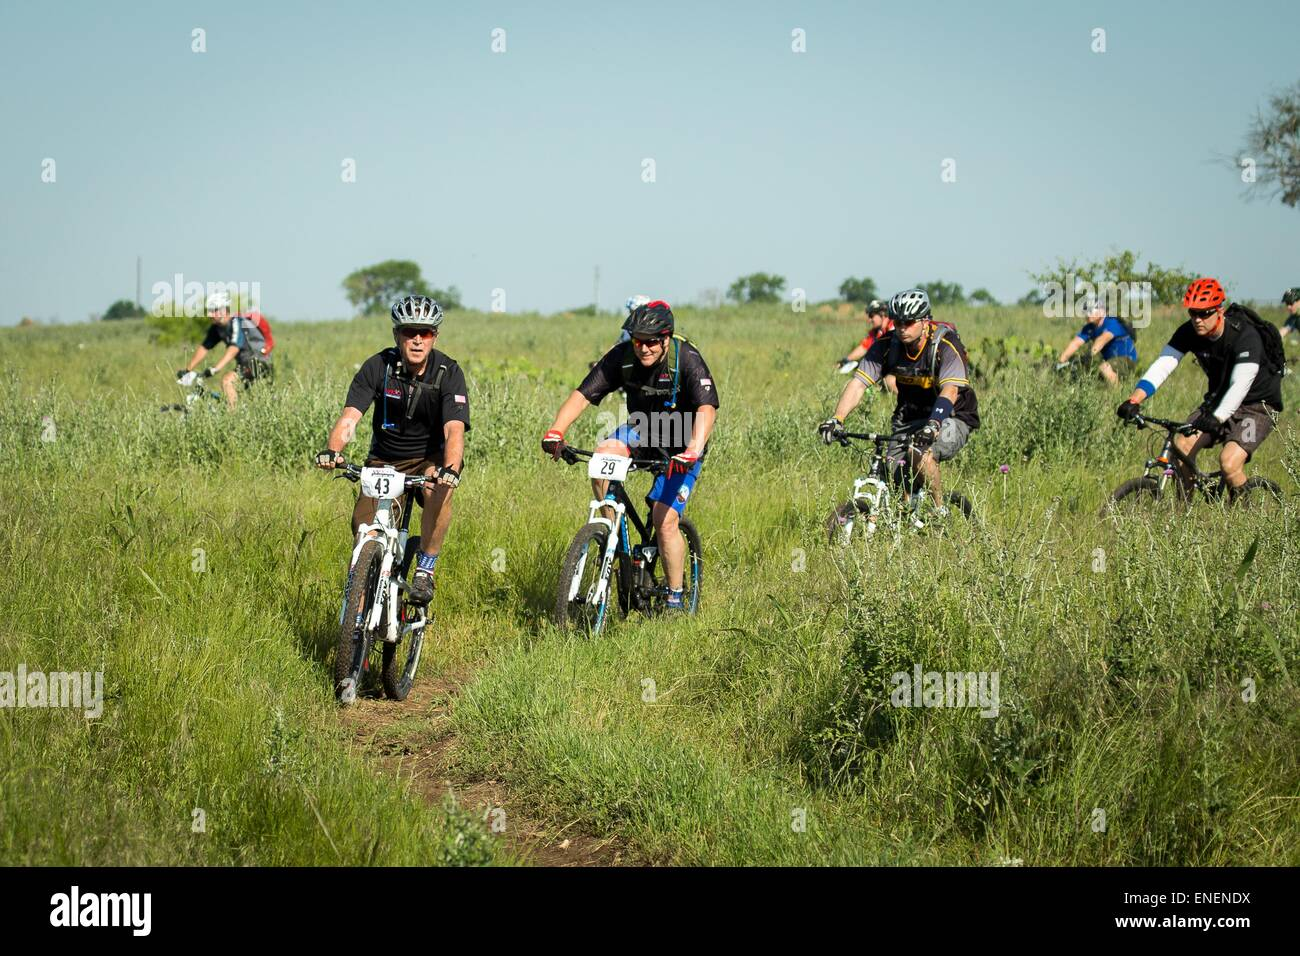 Former U.S. President George W. Bush (right) leads military service members on the W100K mountain bike ride across - Stock Image